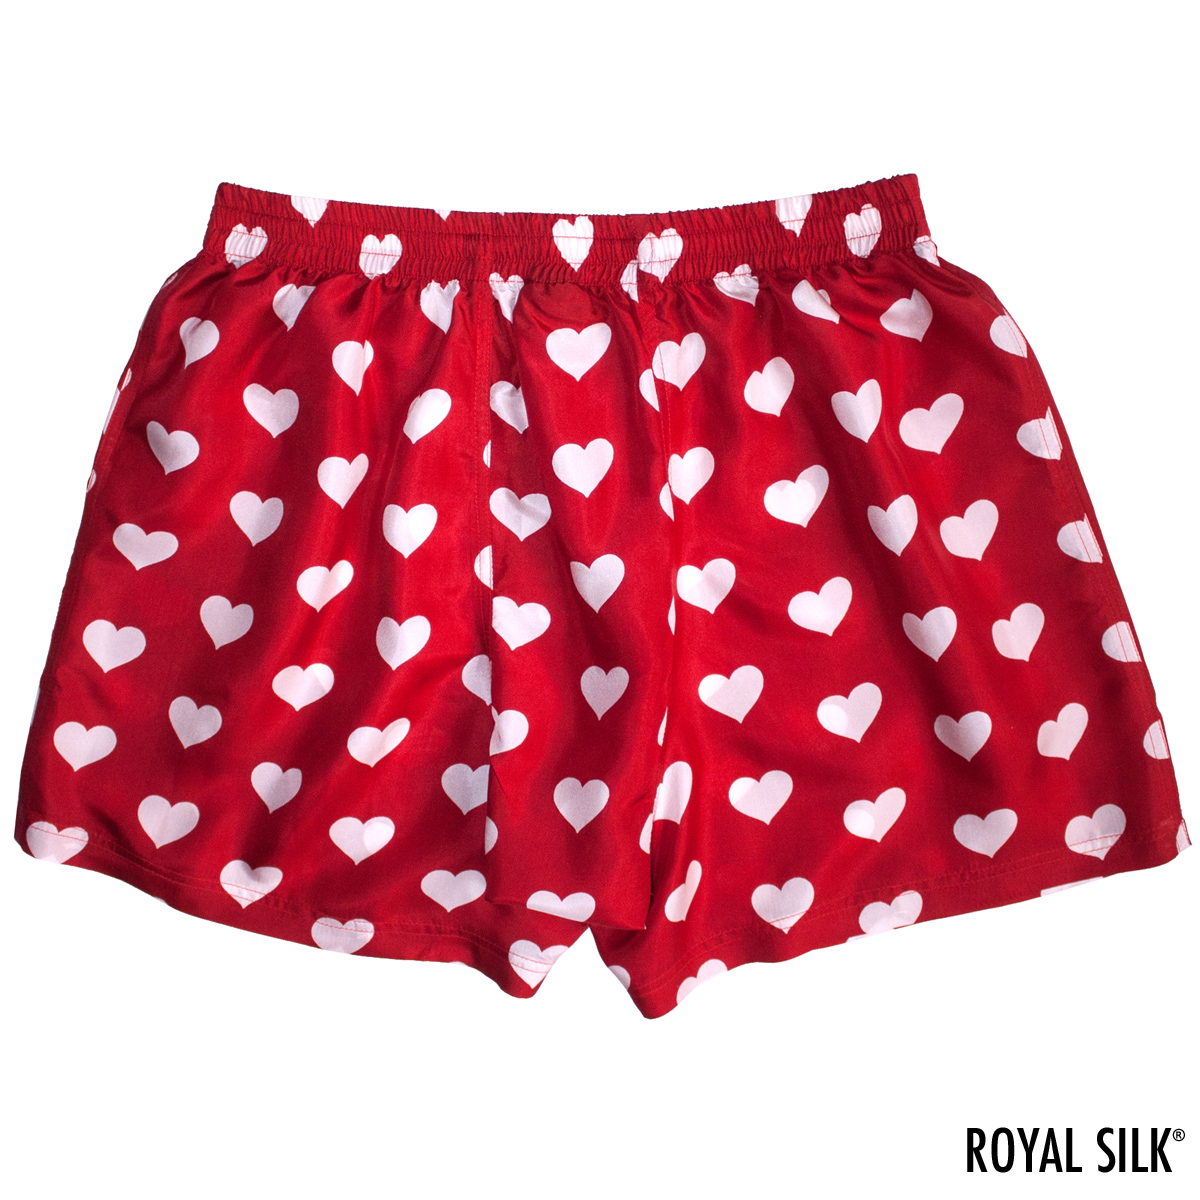 Find great deals on eBay for heart boxers. Shop with confidence.